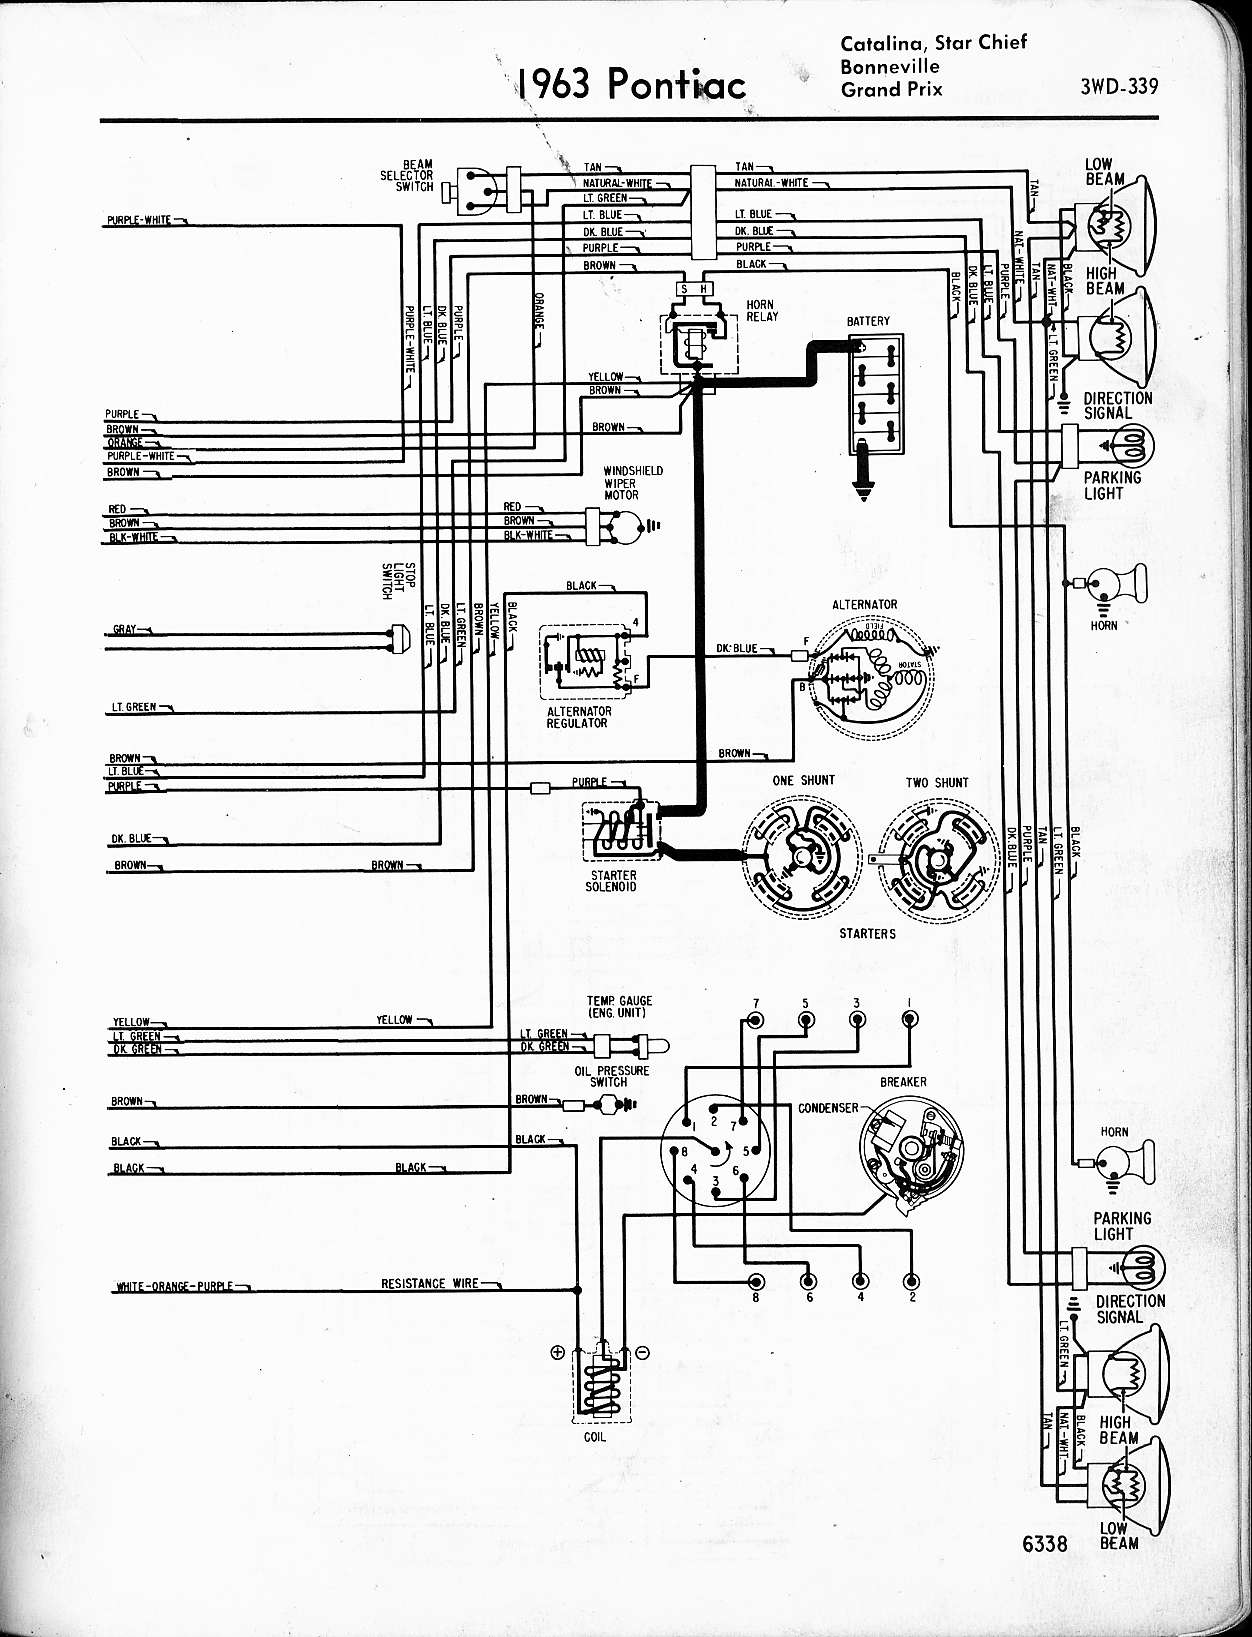 Wallace Racing Wiring Diagrams 63 Falcon Diagram Lights 1963 Catalina Star Chief Bonneville Grand Prix Right Page